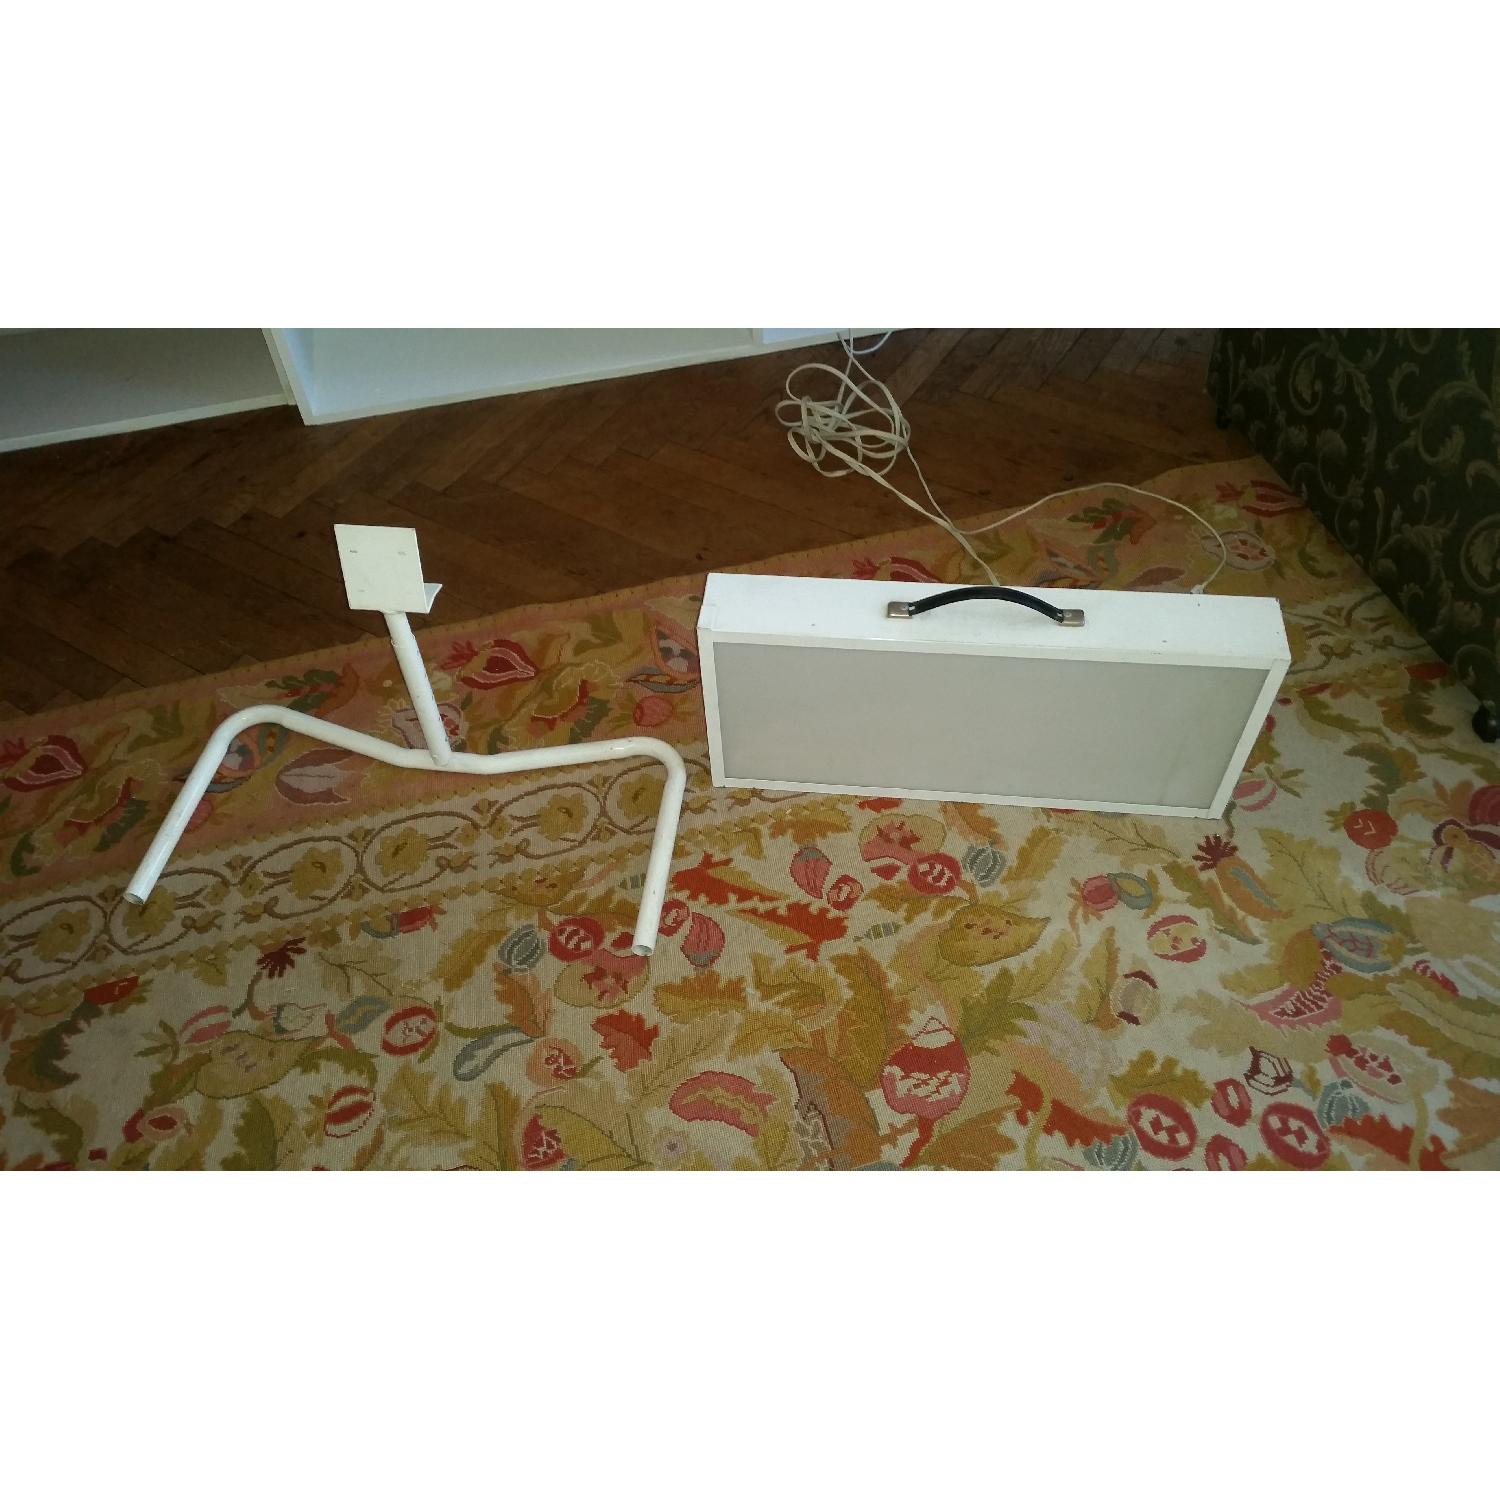 Custom Designed Light Therapy Box and Stand - image-4